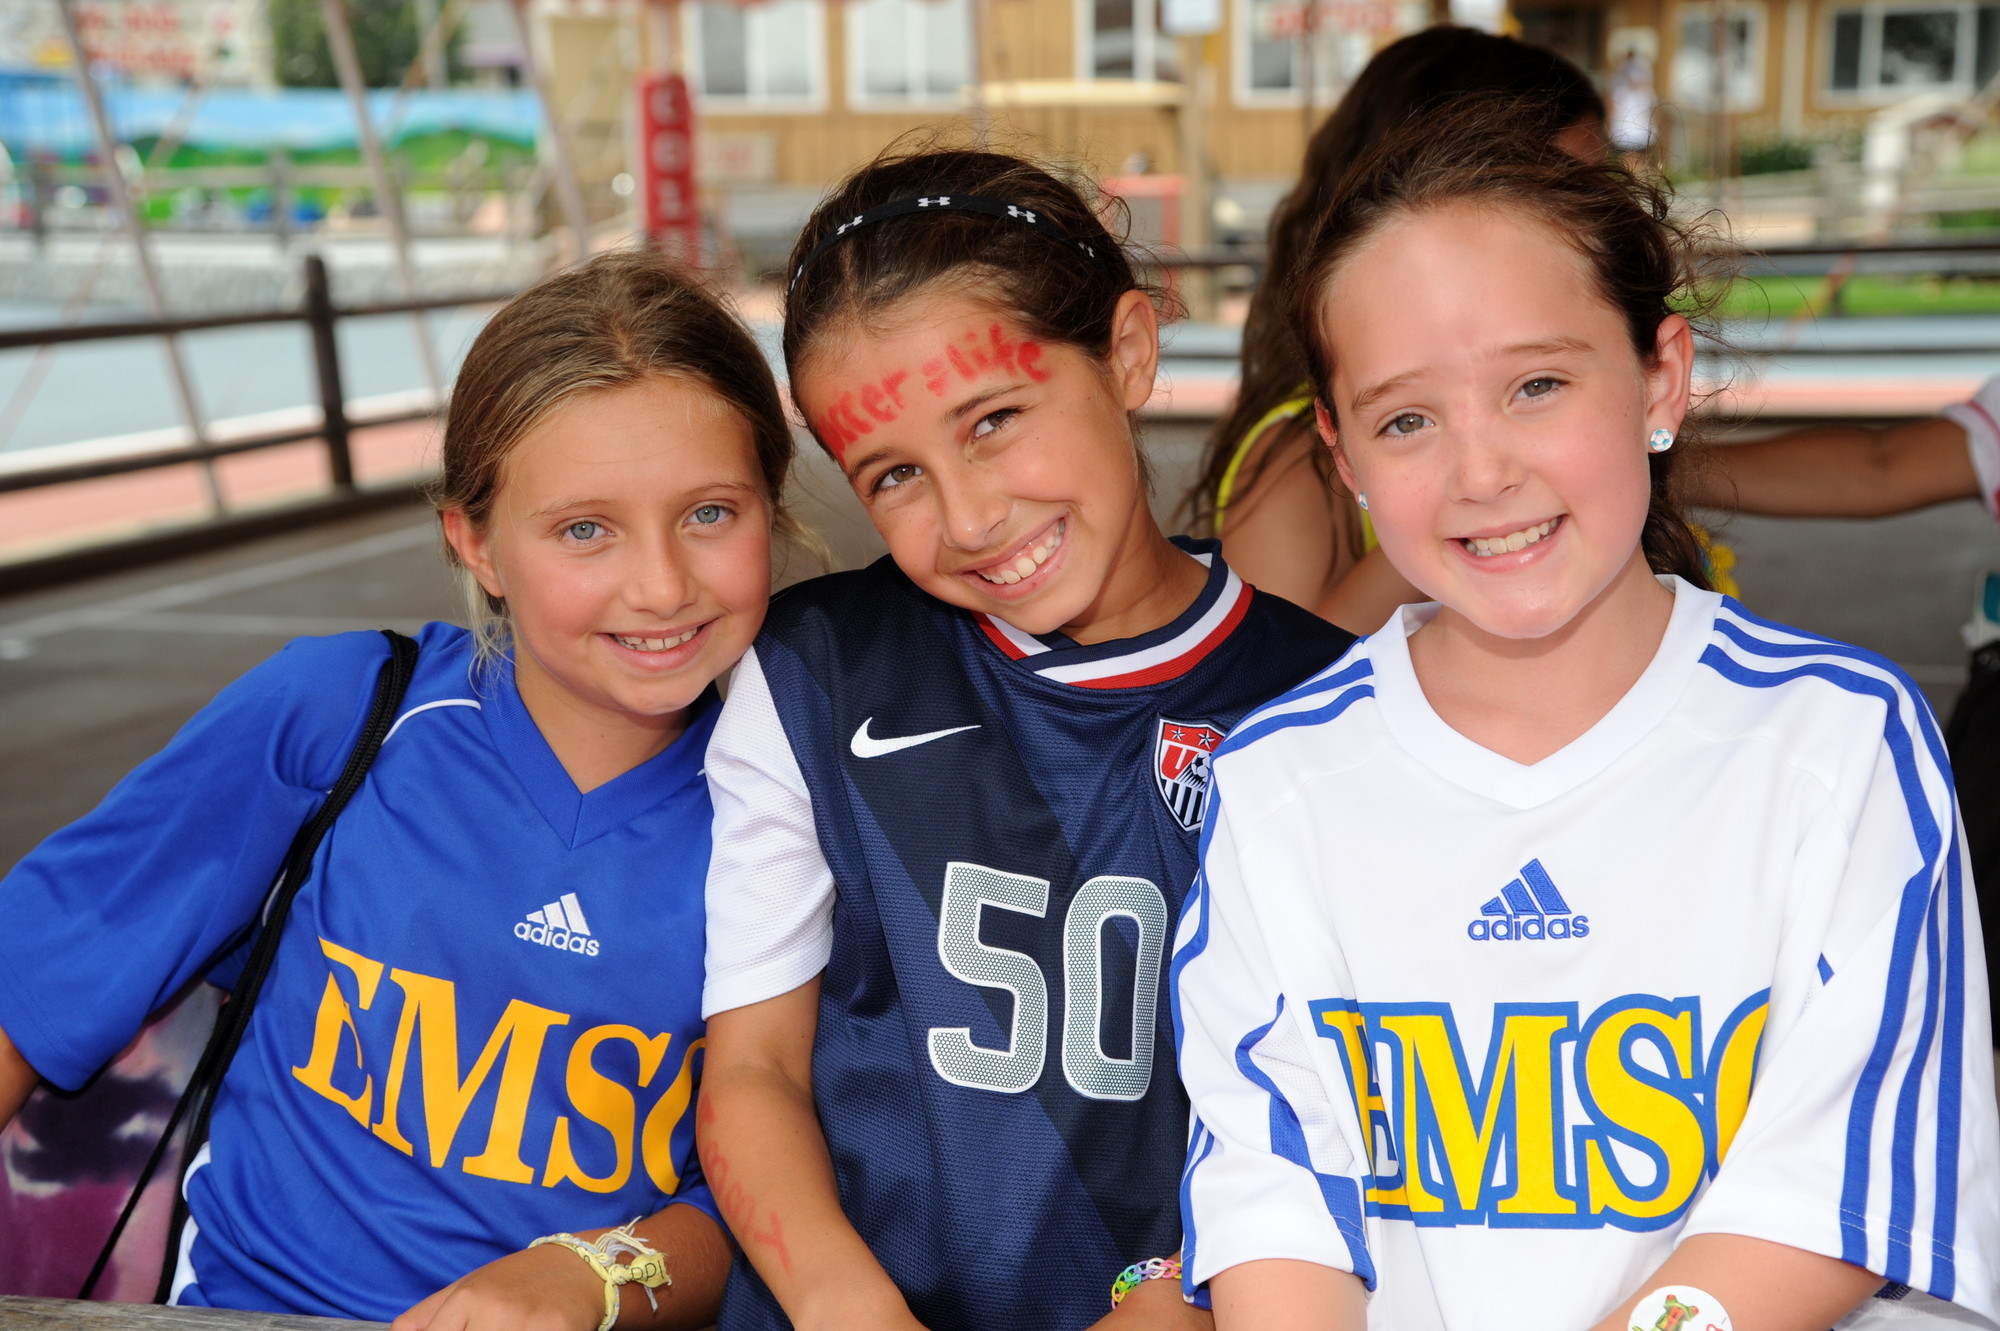 Coleman campers, from left, Arianna Peckham, 9, Samantha Miller, 10, and Rebecca Kussin, 9, who play soccer in the East Meadow Soccer Club, were thrilled to meet Wambach.